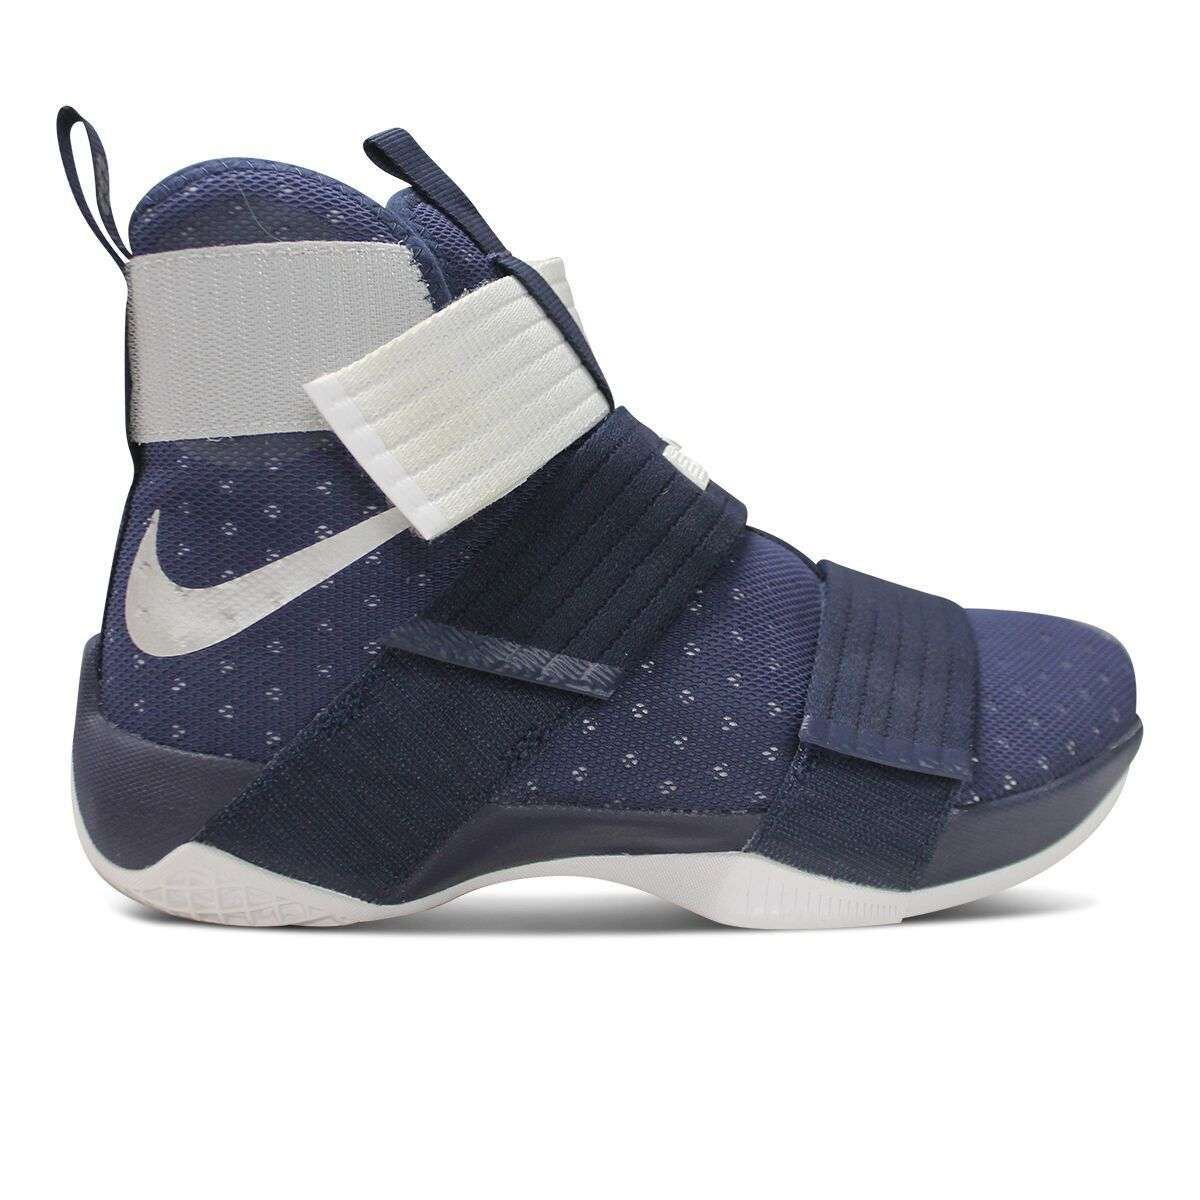 best service 0930f 5246f Nike Men's Lebron Soldier 10 Basketball Shoes